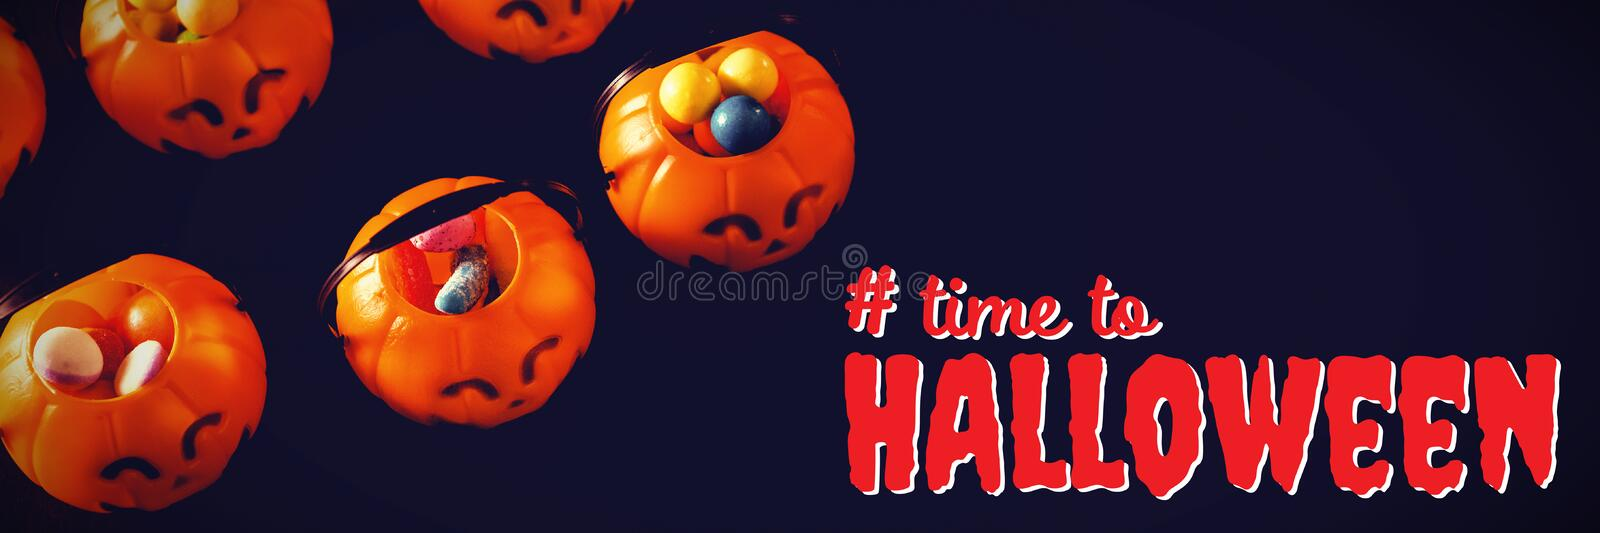 Composite image of digital composite image of time to halloween text. Digital composite image of time to Halloween text against jack o lantern containers with stock photography